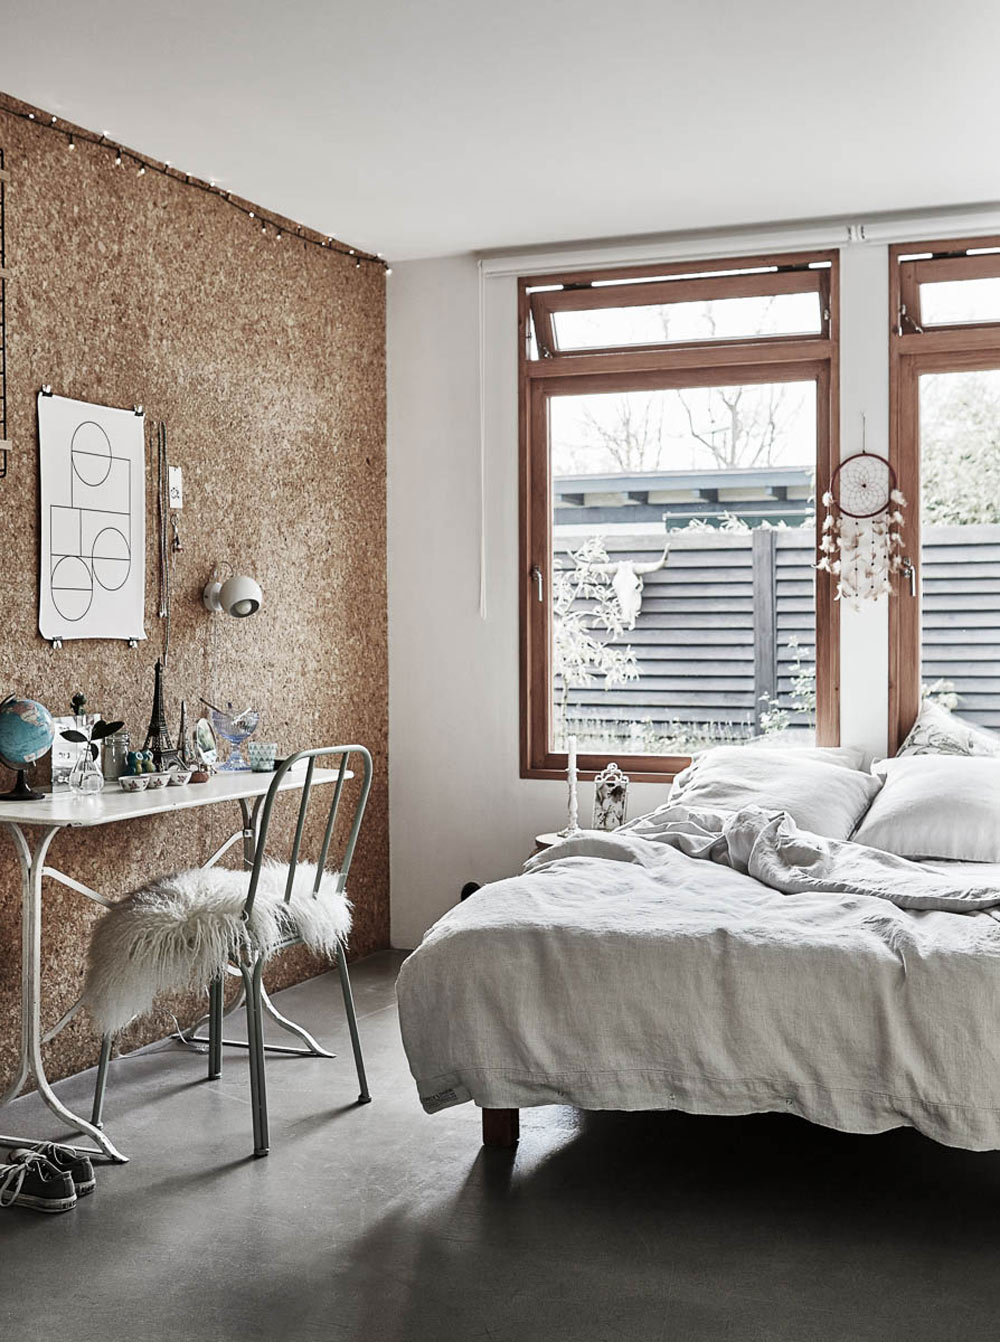 Oracle, Fox, Sunday, Sanctuary, Tina, Hellberg, Minimal, Scandinavian, Interiors,  Wooden, Bright, Bedroom